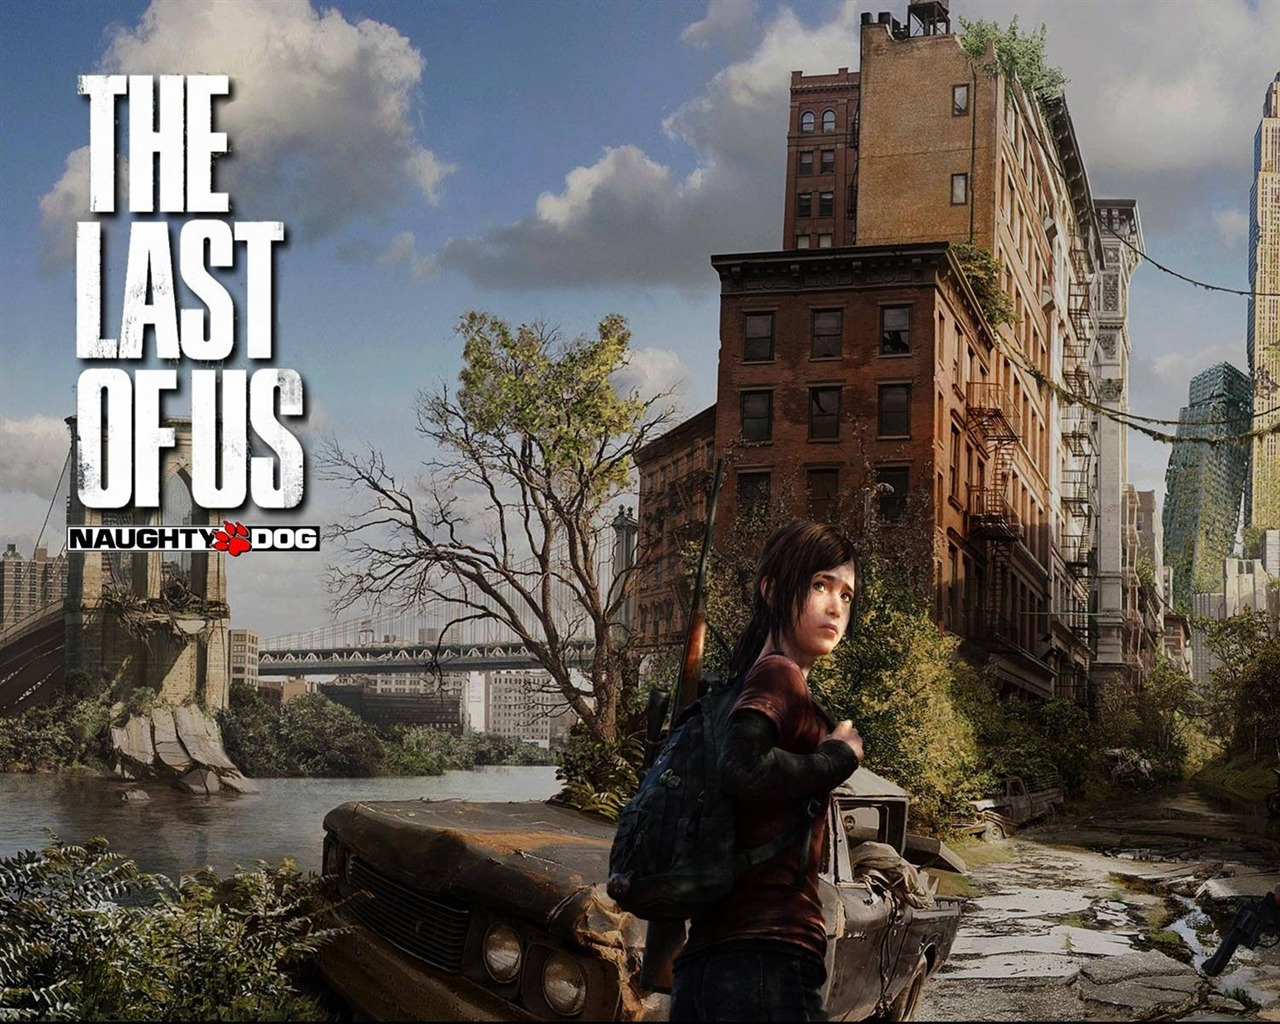 The Last Of Us Game Hd Wallpaper 02 Preview 10wallpaper Com